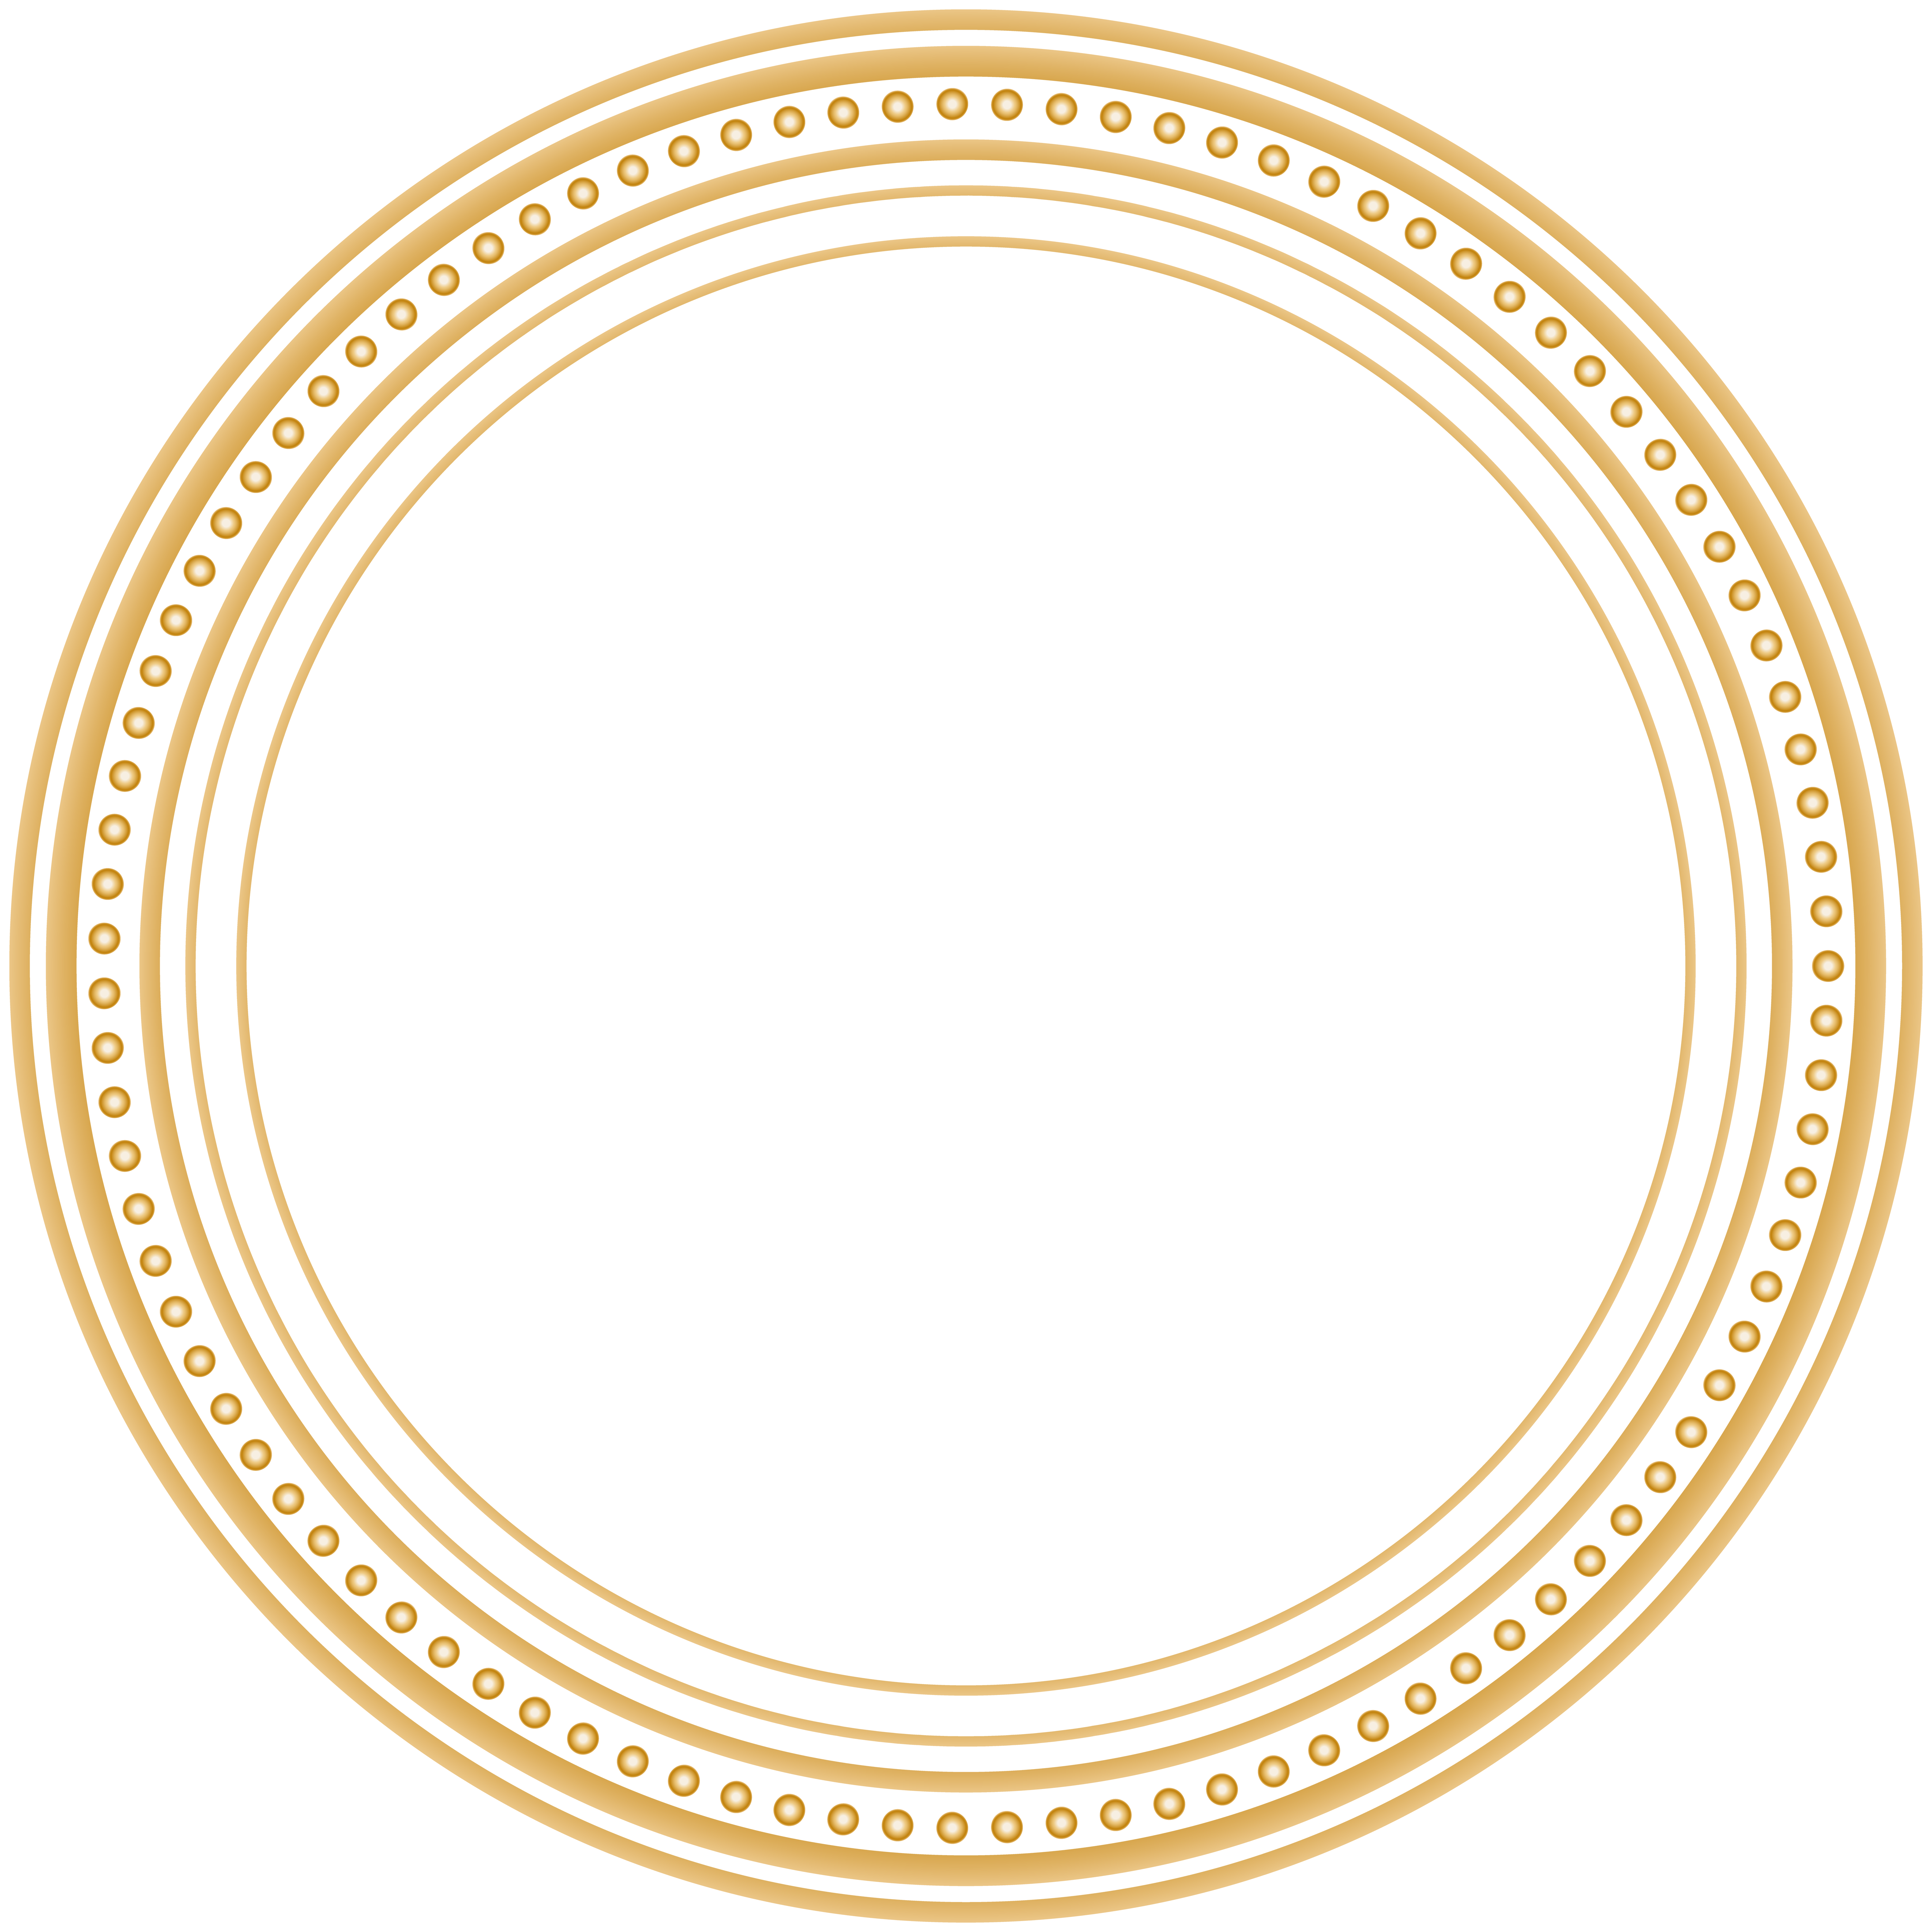 Round frame png. Clip art image gallery